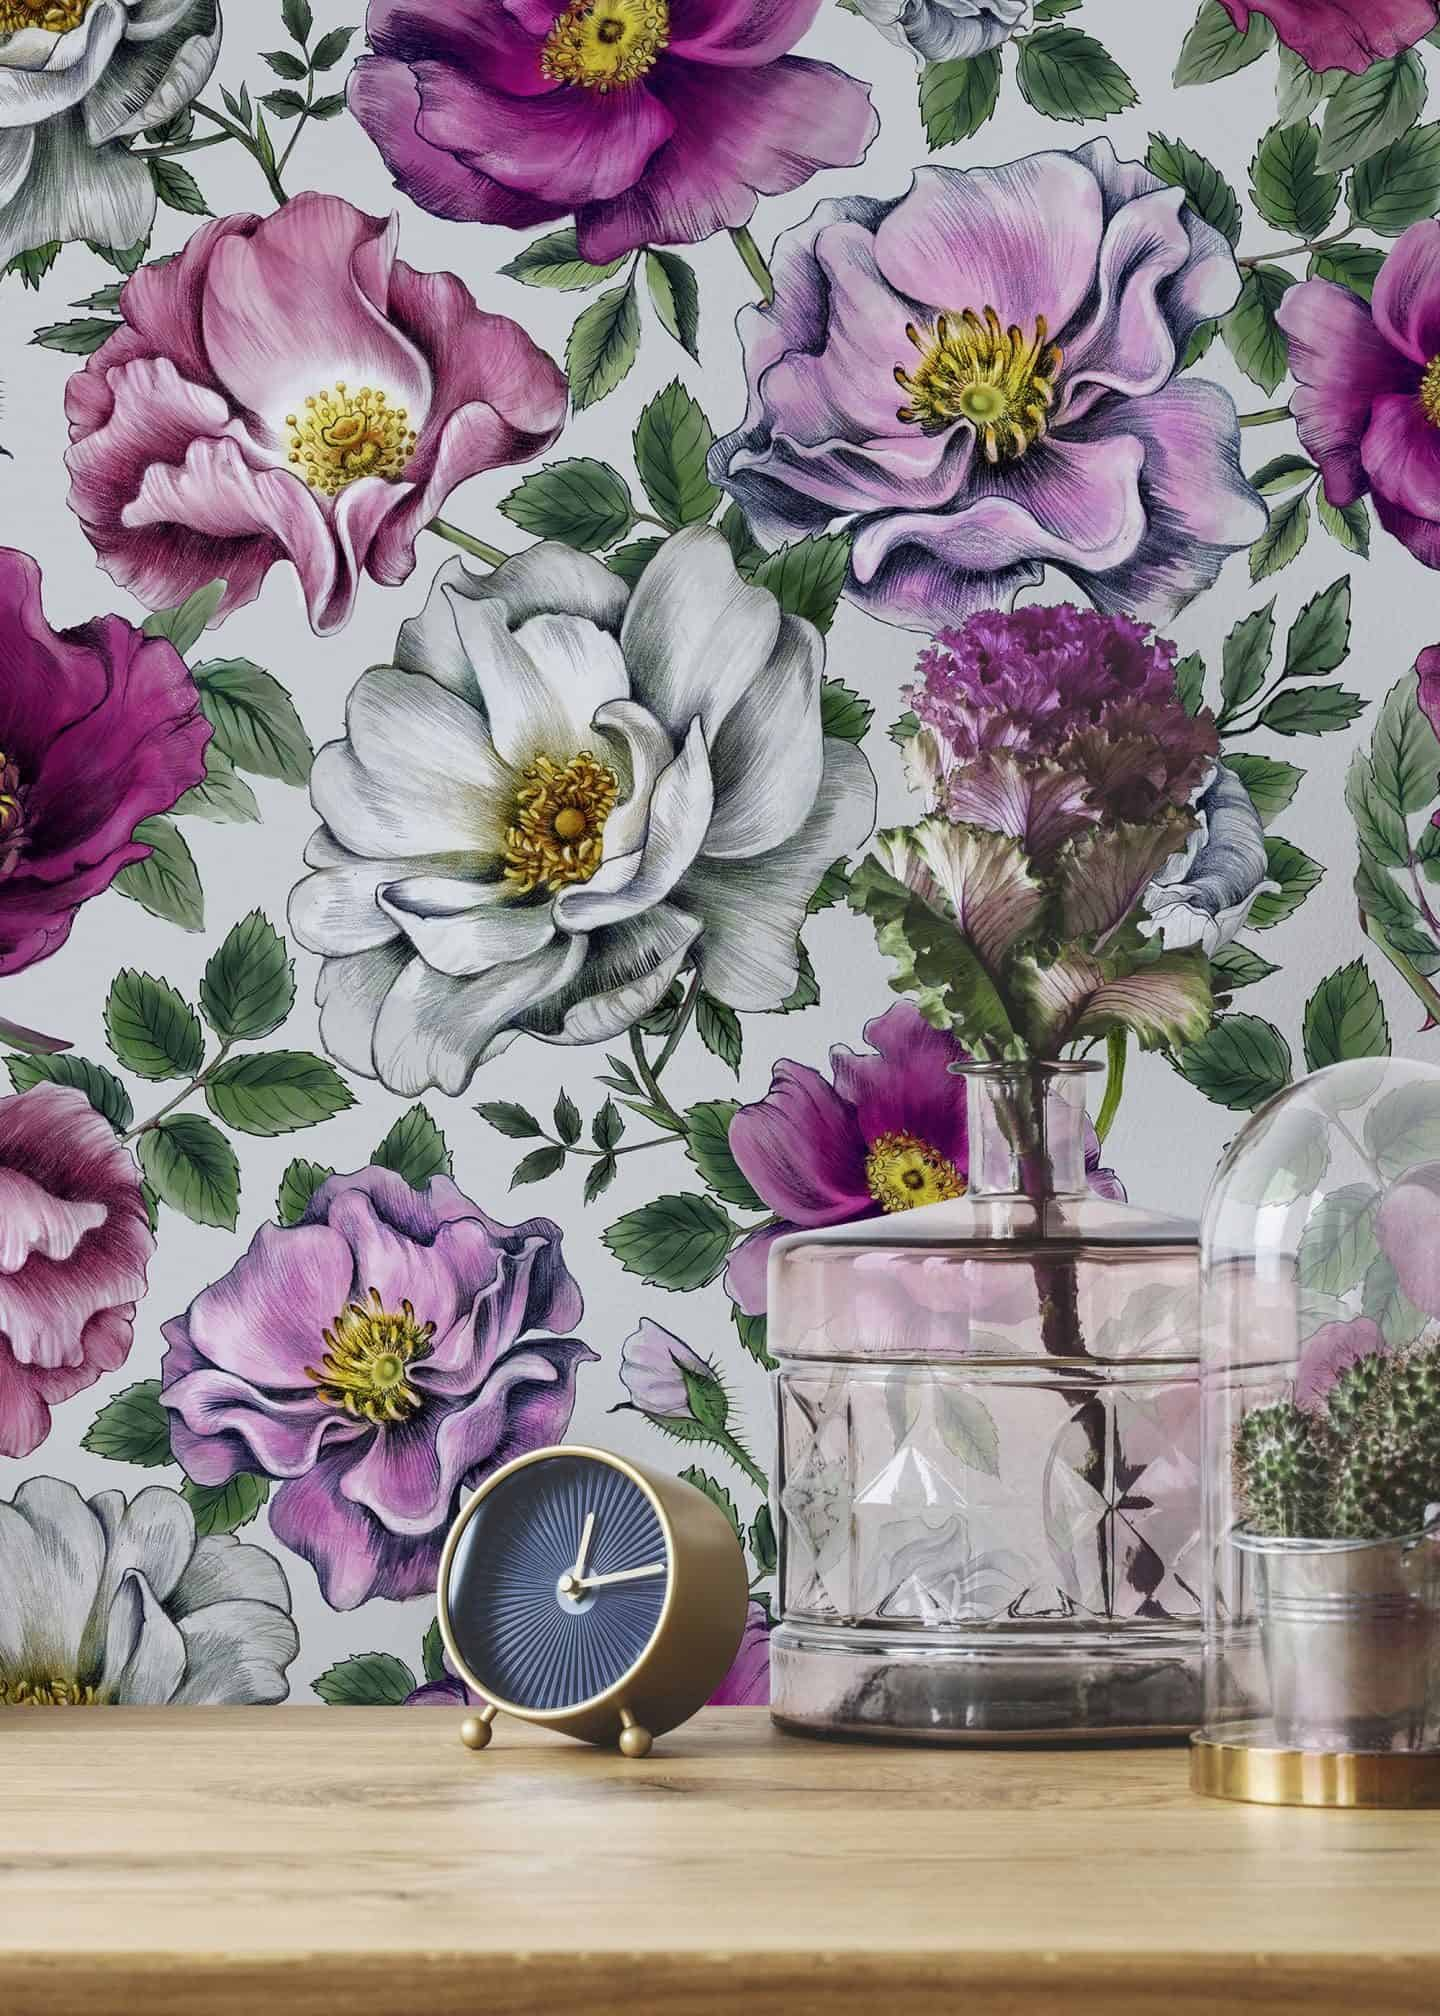 Dawn Chorus wallpaper by Saga Mariah Sandberg for Photowall